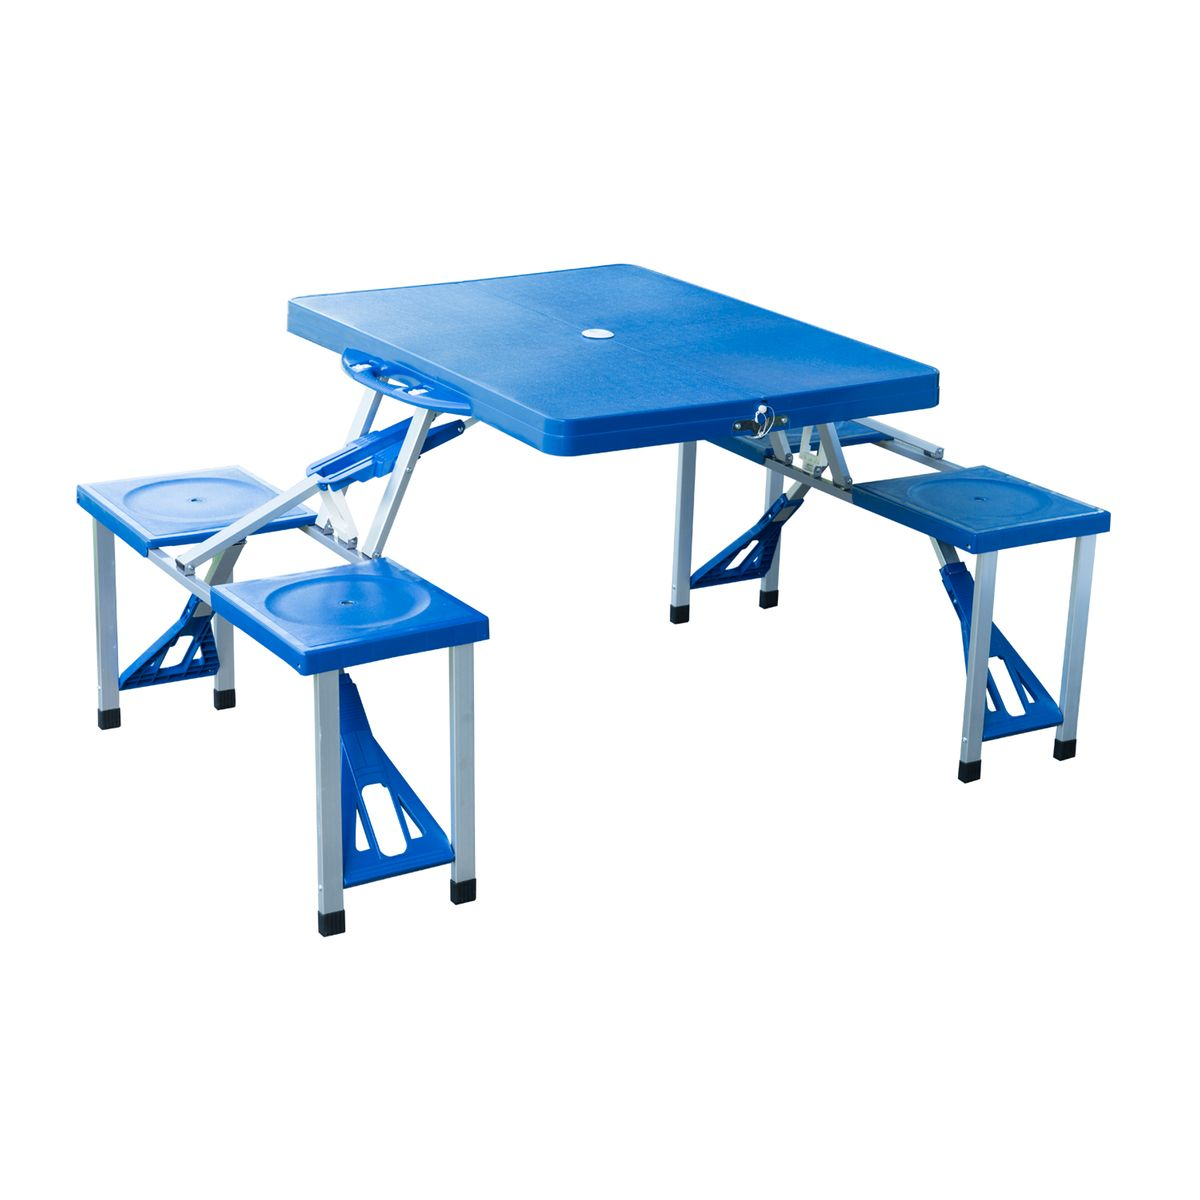 Table pliante topiwall - Table picnic pliante decathlon ...